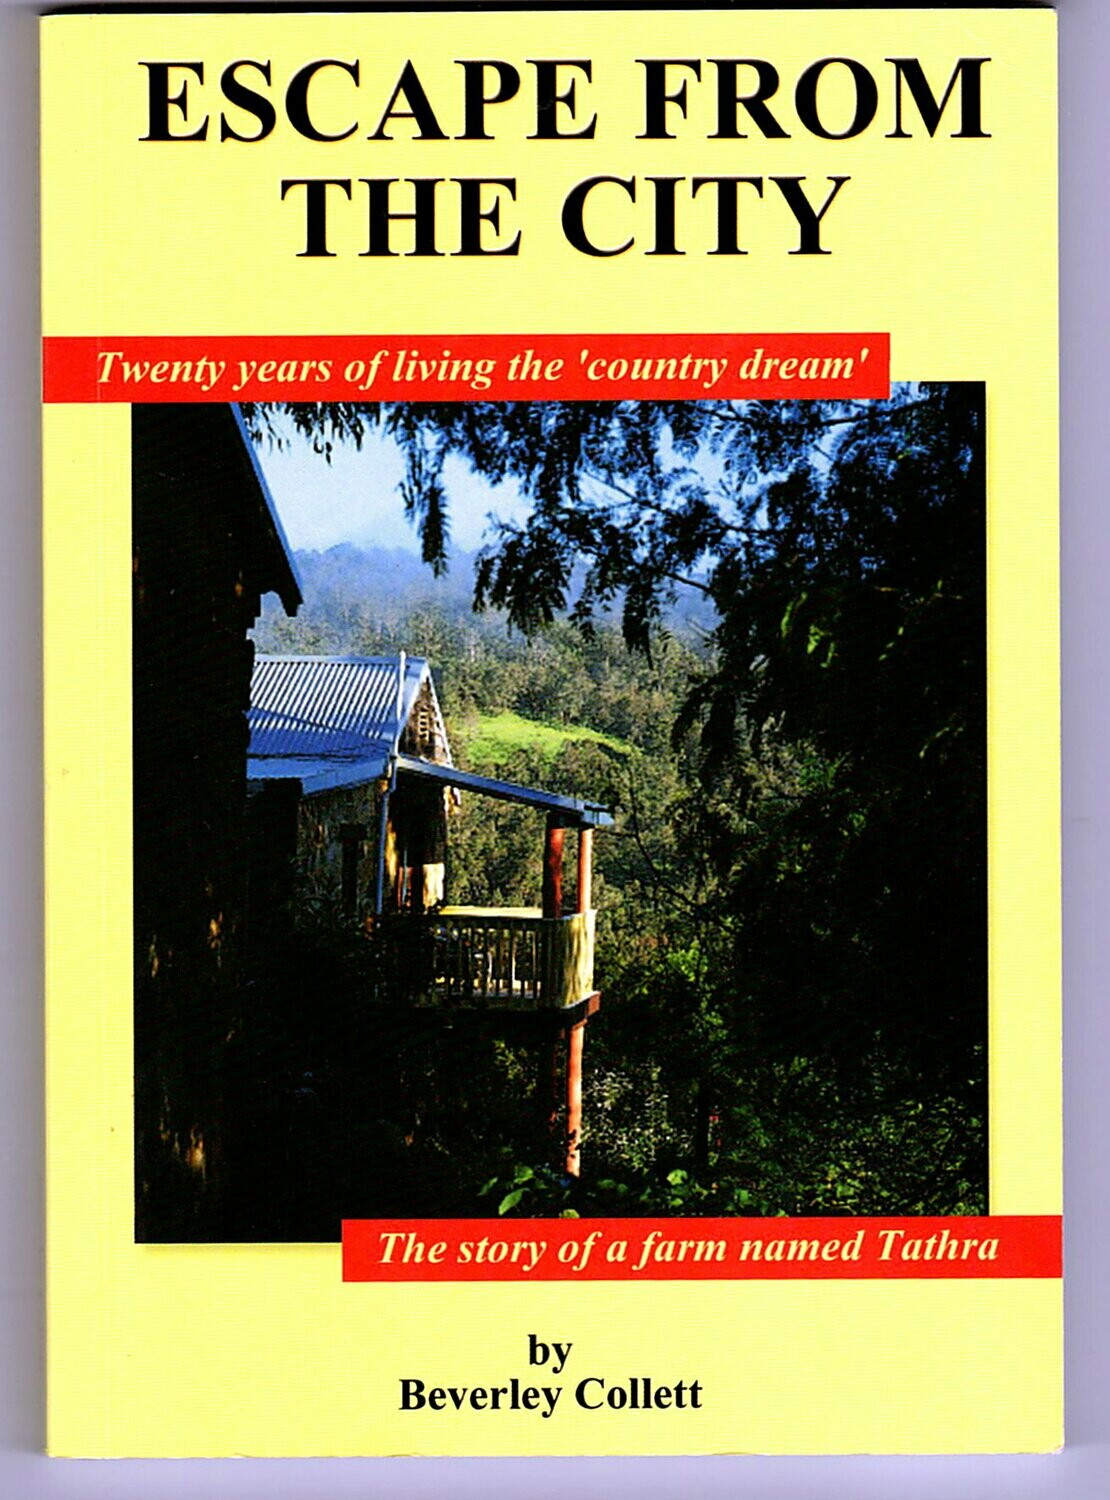 Escape from the City:  Twenty Years of Living the Country Dream by Beverley Collett